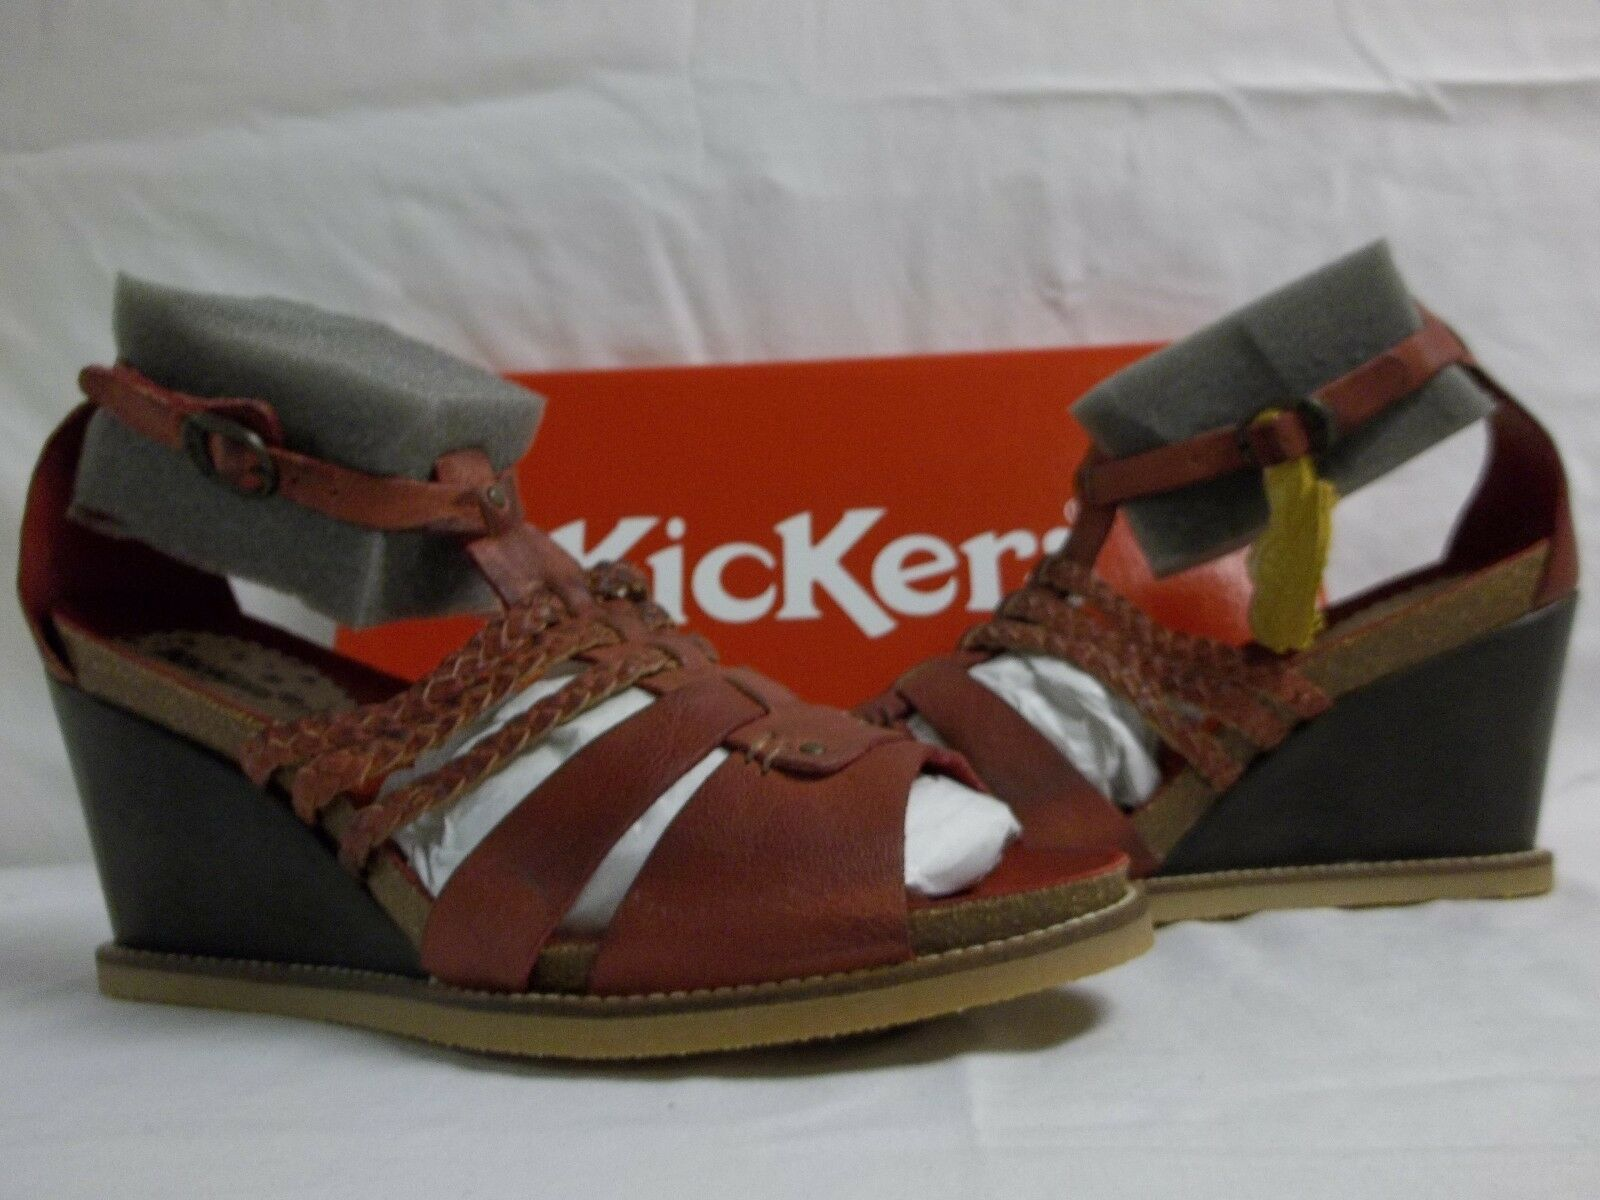 Kickers Größe 8.5 M U Wedges Find Dark ROT Leder Wedges U New Damenschuhe Schuhes 396dd6